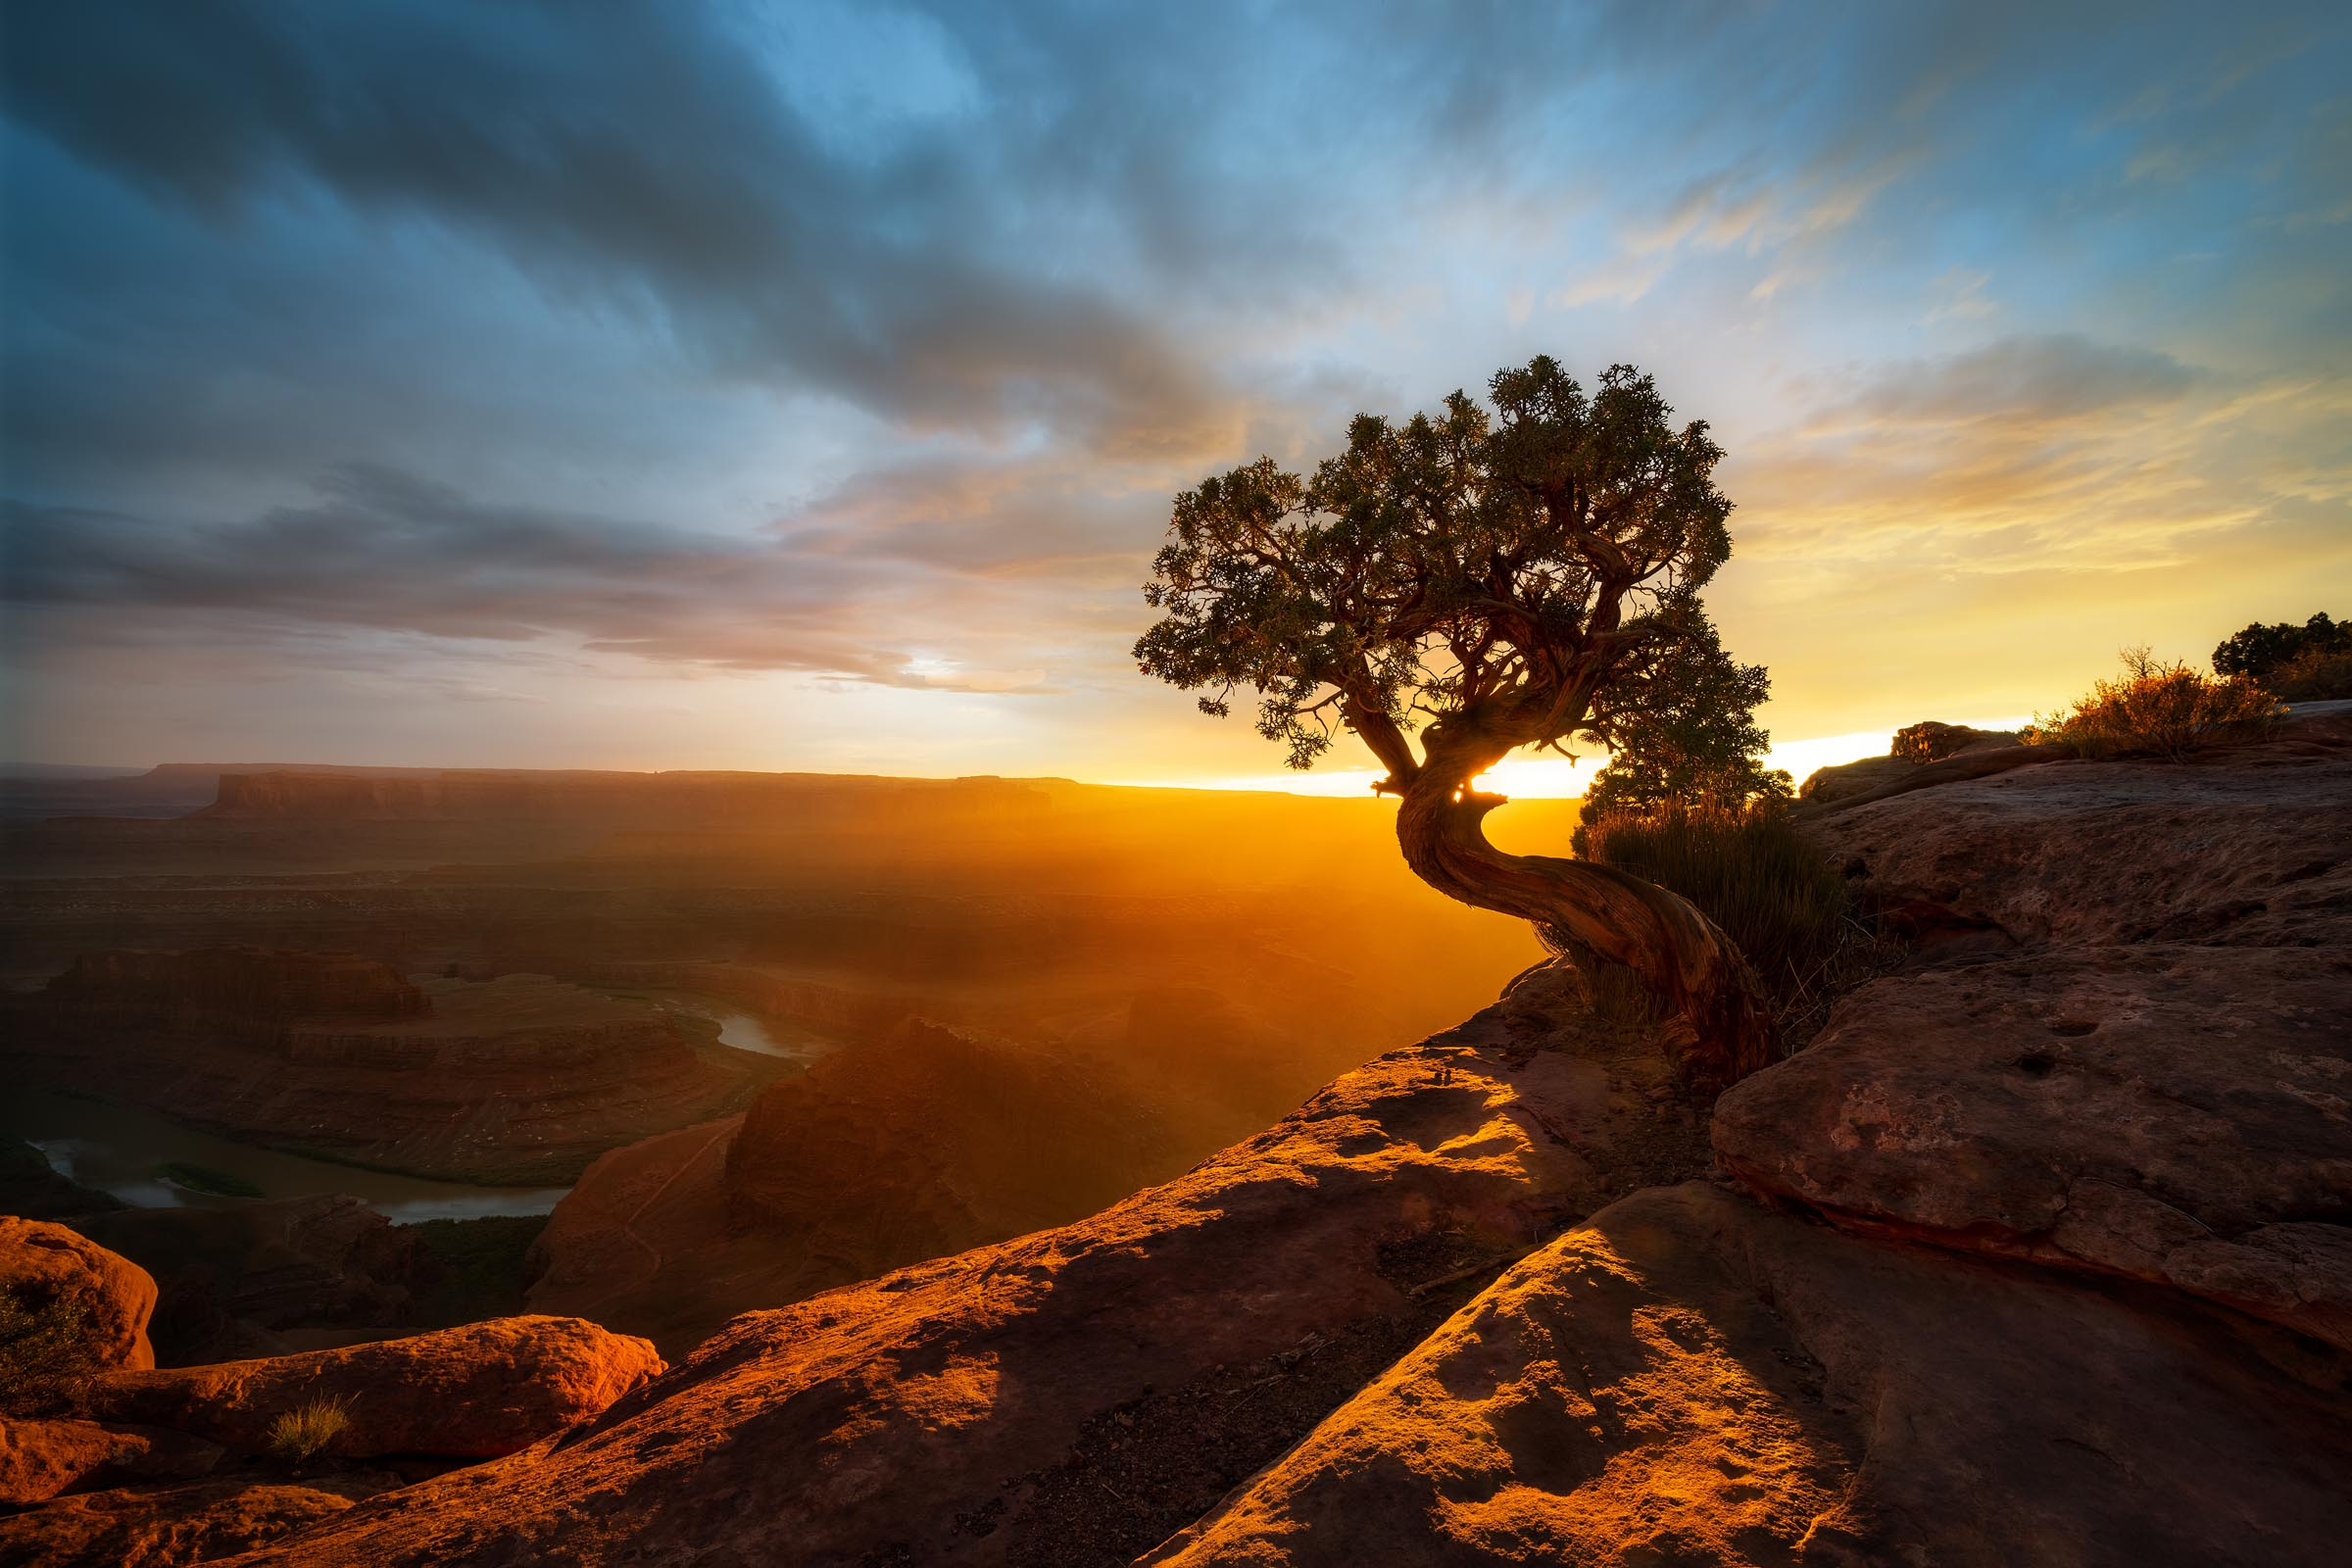 Photograph of Dead Horse in Dead Horse Point, Utah by Brent Goldman Photography